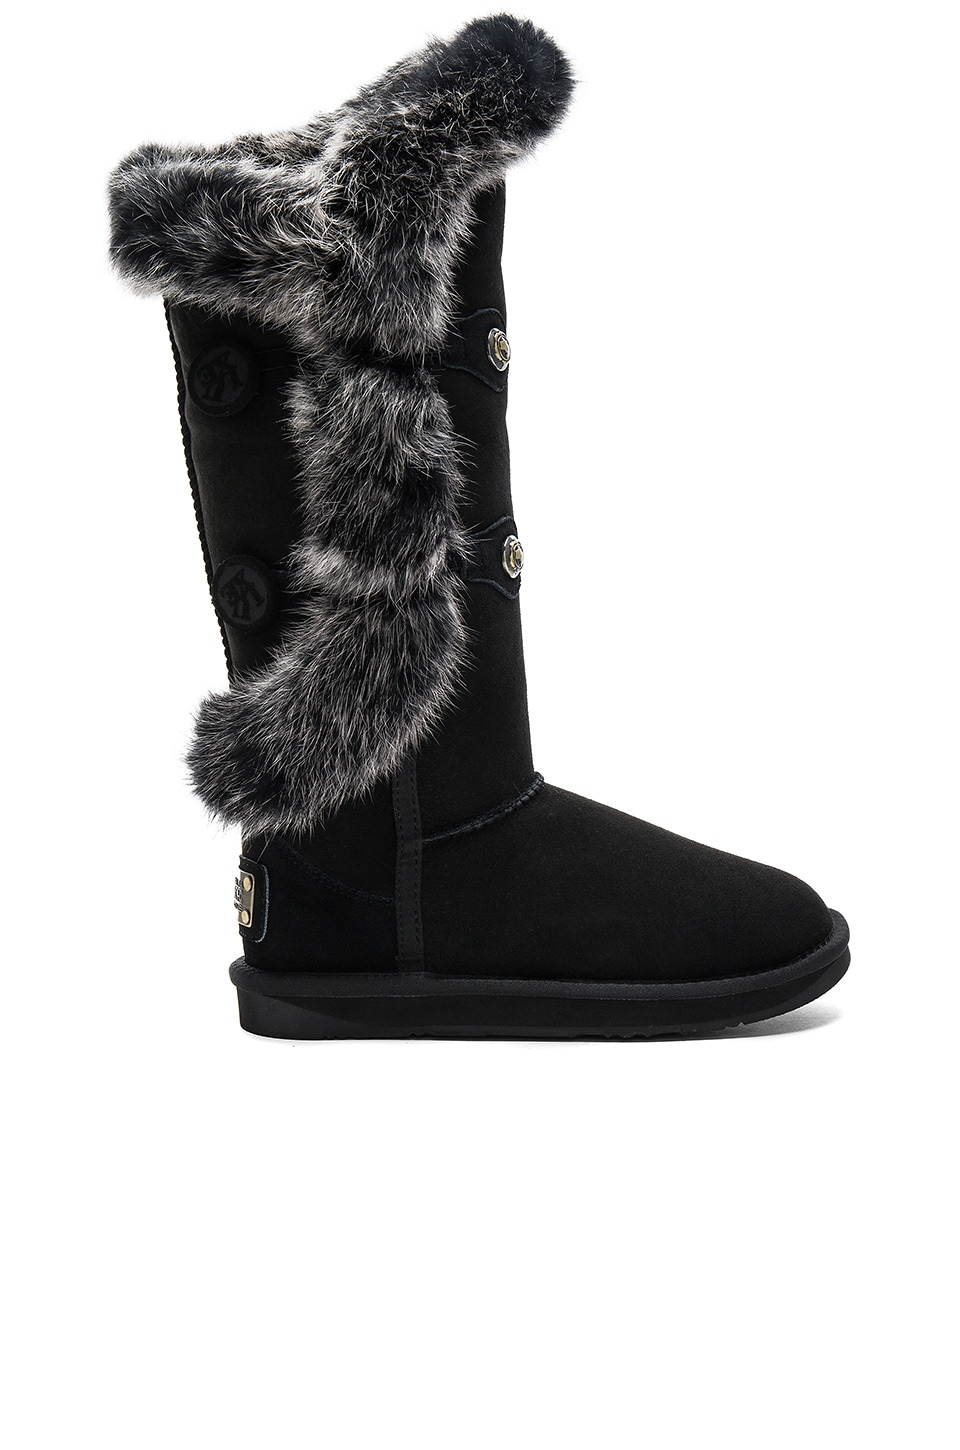 Nordic Angel X Tall Rabbit Fur and Shearling Boot by Australia Luxe Collective